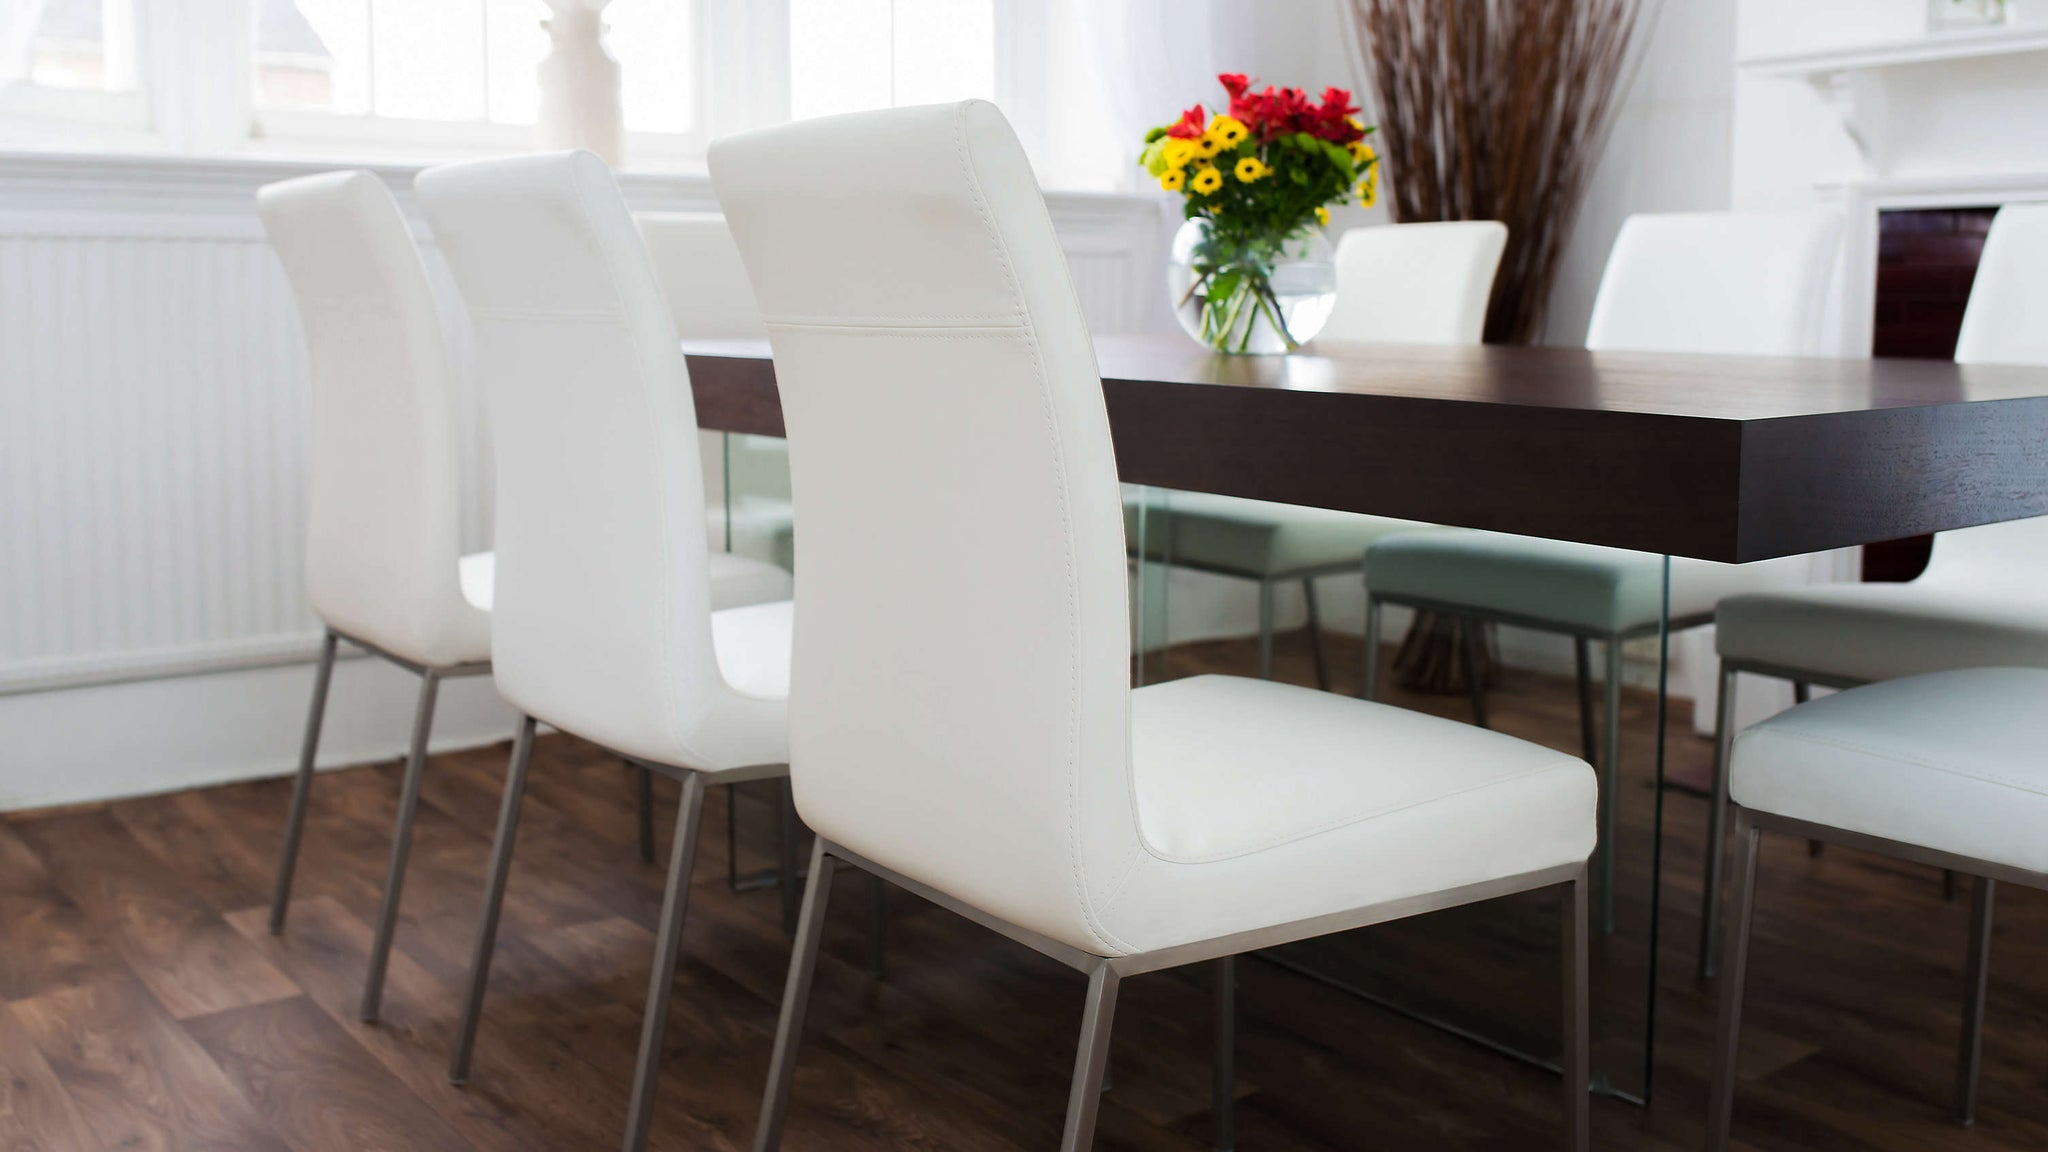 Strong Glass Based Dining Table with Modern White Dining Chairs